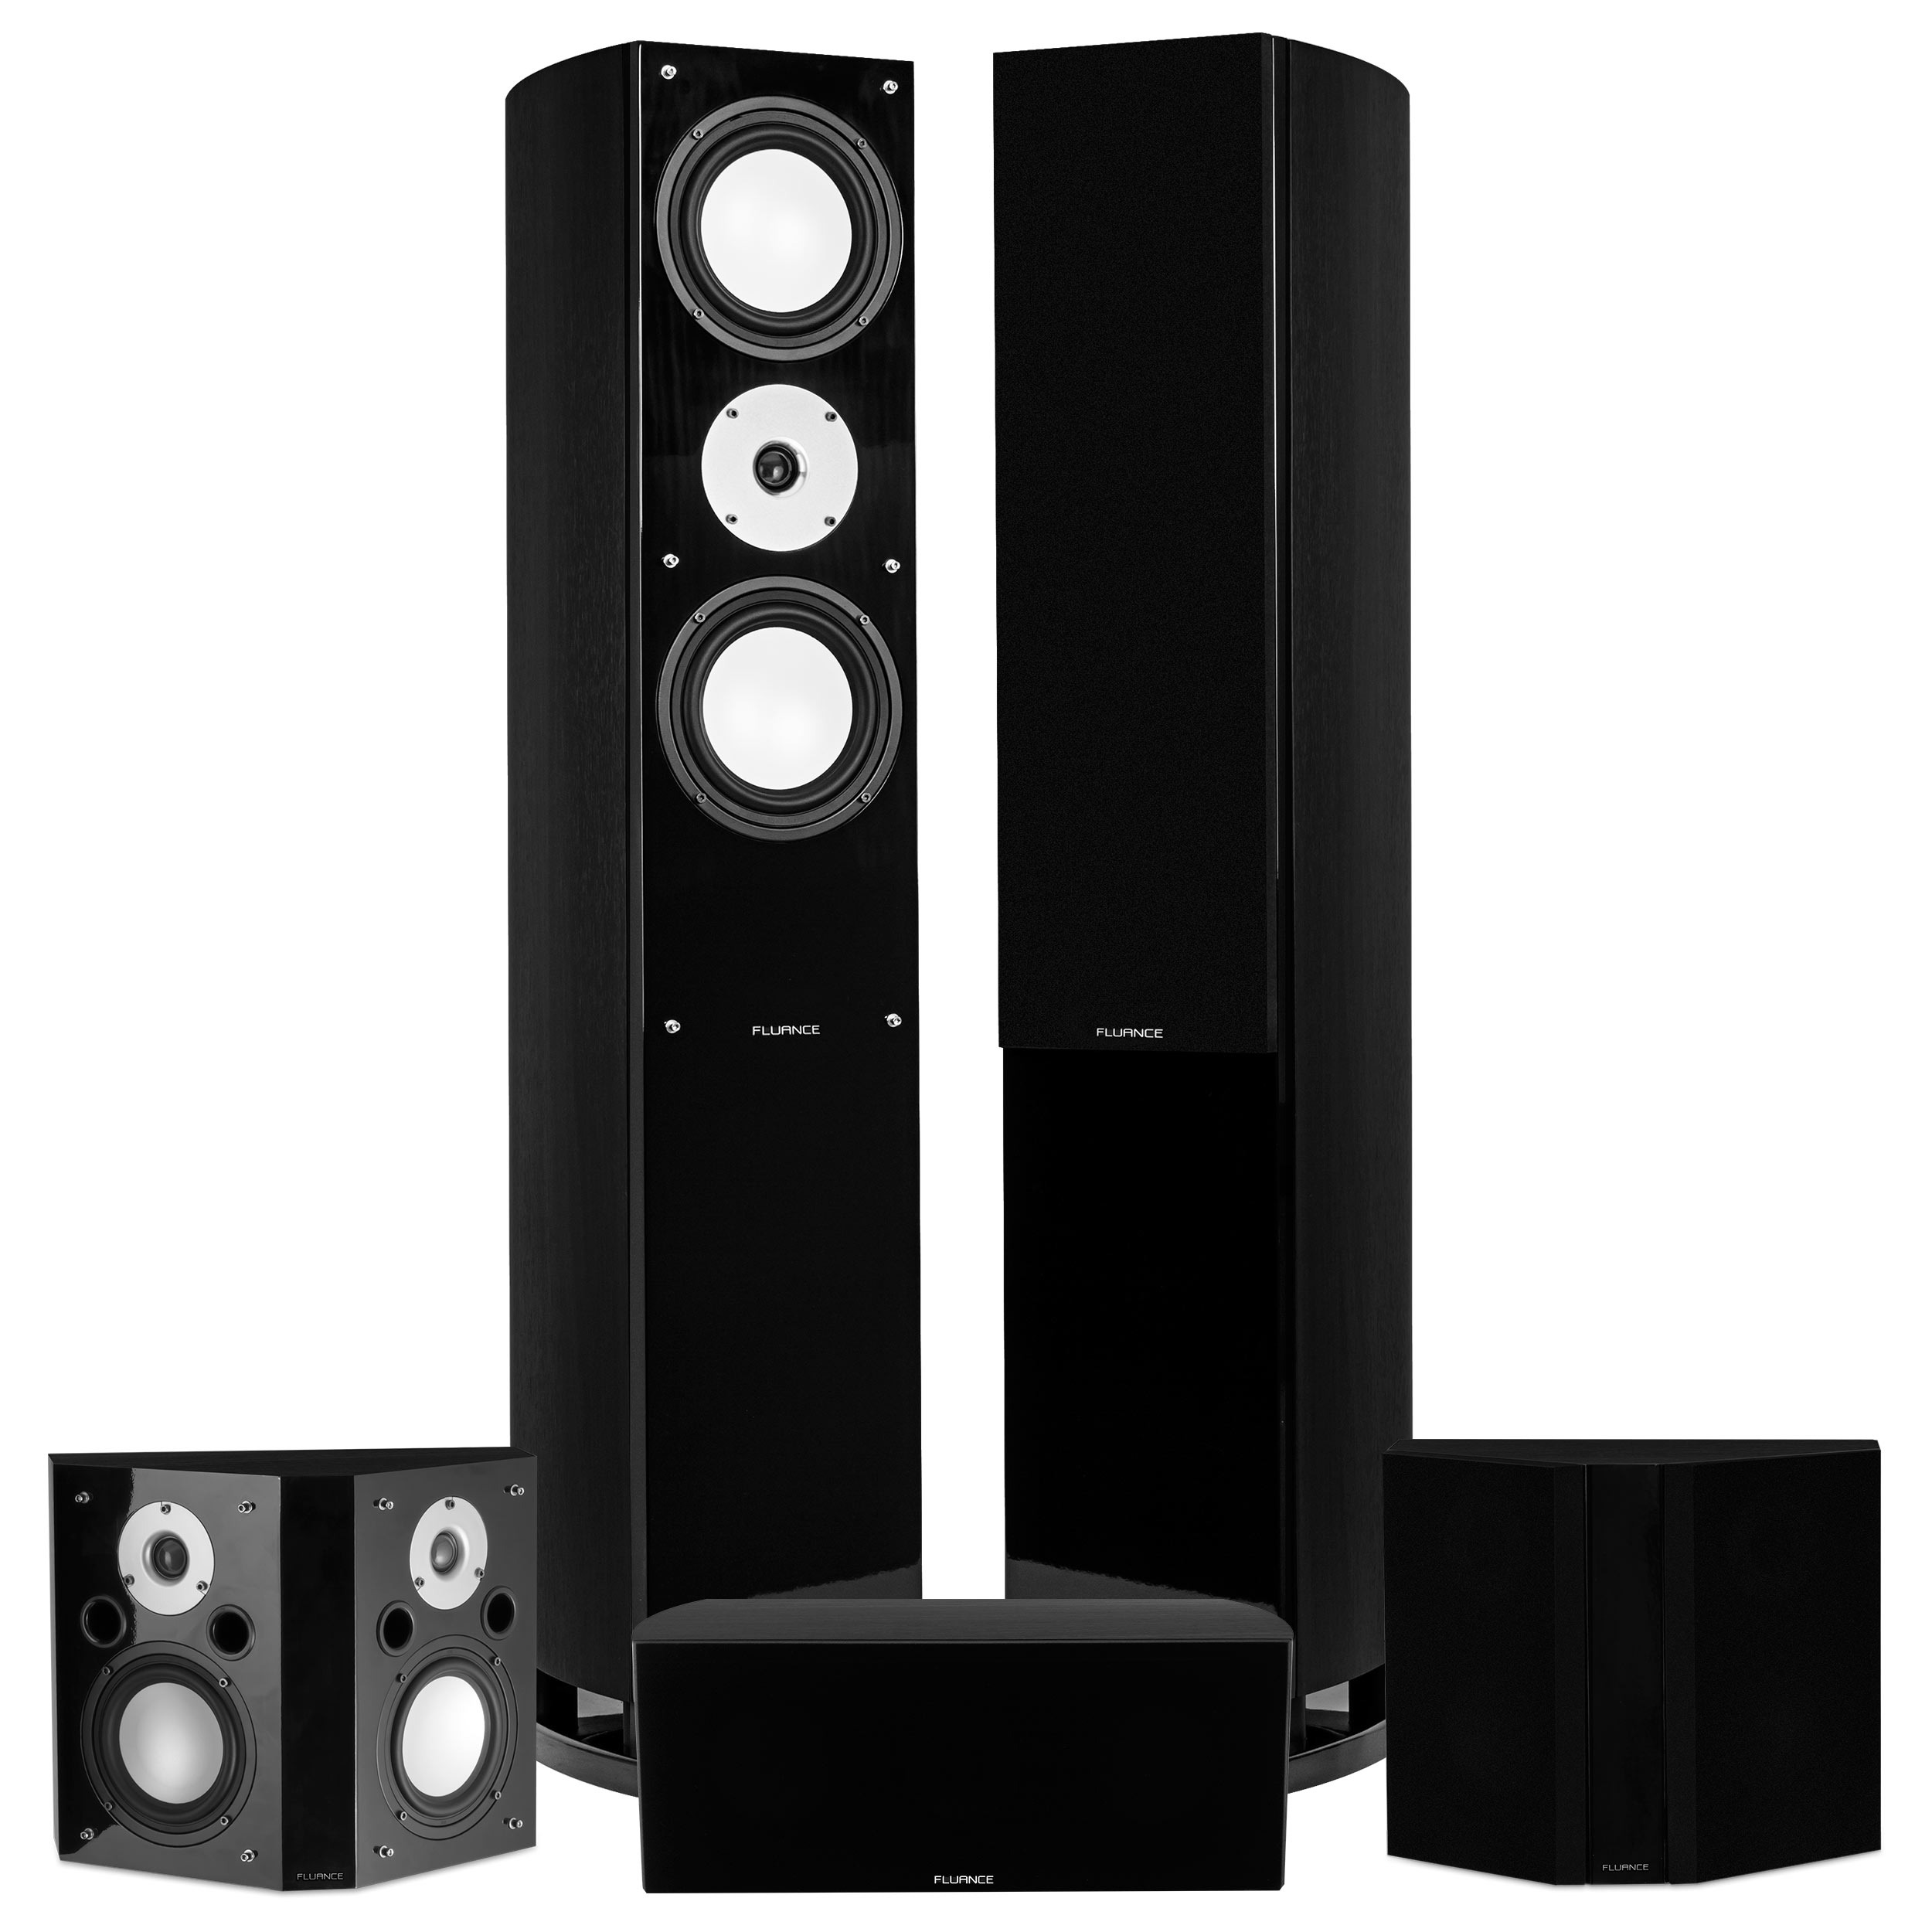 Fluance Reference Series Surround Sound Home Theater 5.0 Channel Speaker System including Three-way Floorstanding Towers, Center Channel, and Bipolar Speakers - Black Ash (XL50BB)